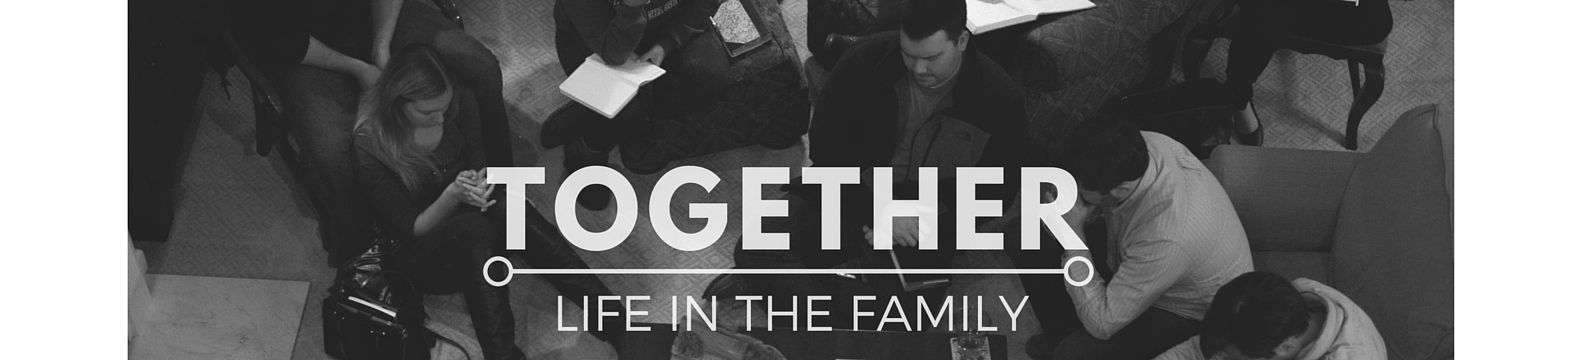 Together: Life in the Family Part II – Friending